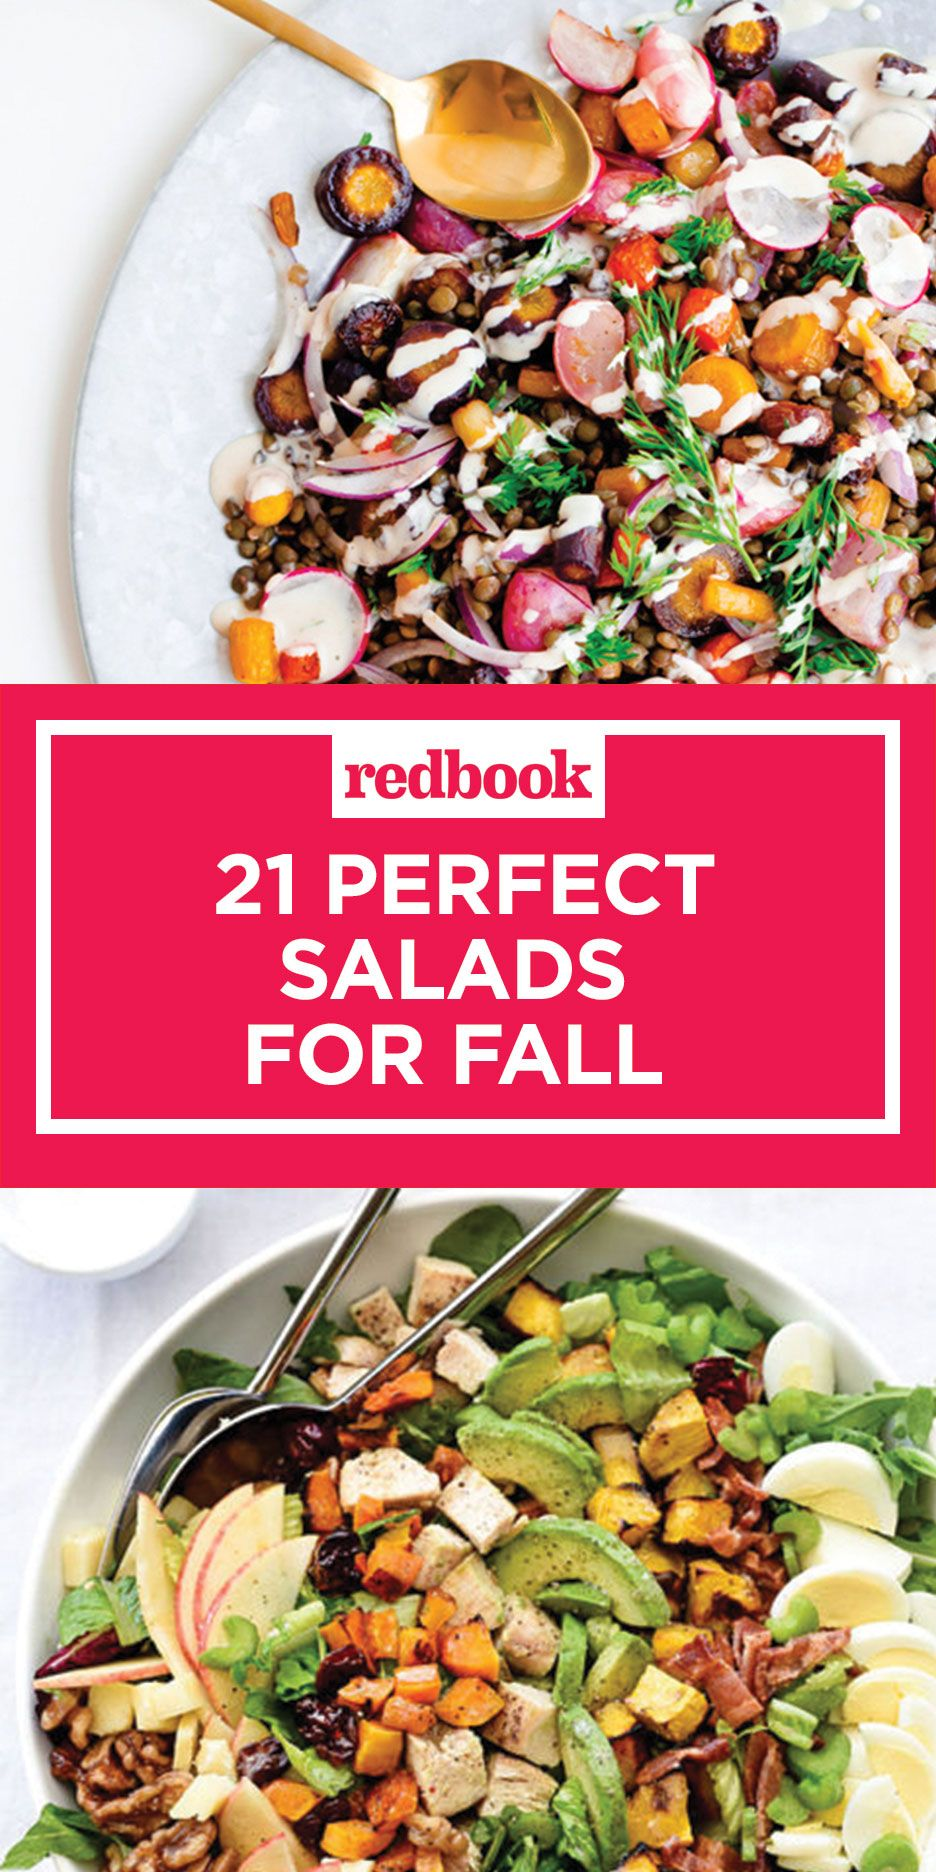 Discussion on this topic: 17 Colorful, Comforting Fall Salads to Make , 17-colorful-comforting-fall-salads-to-make/